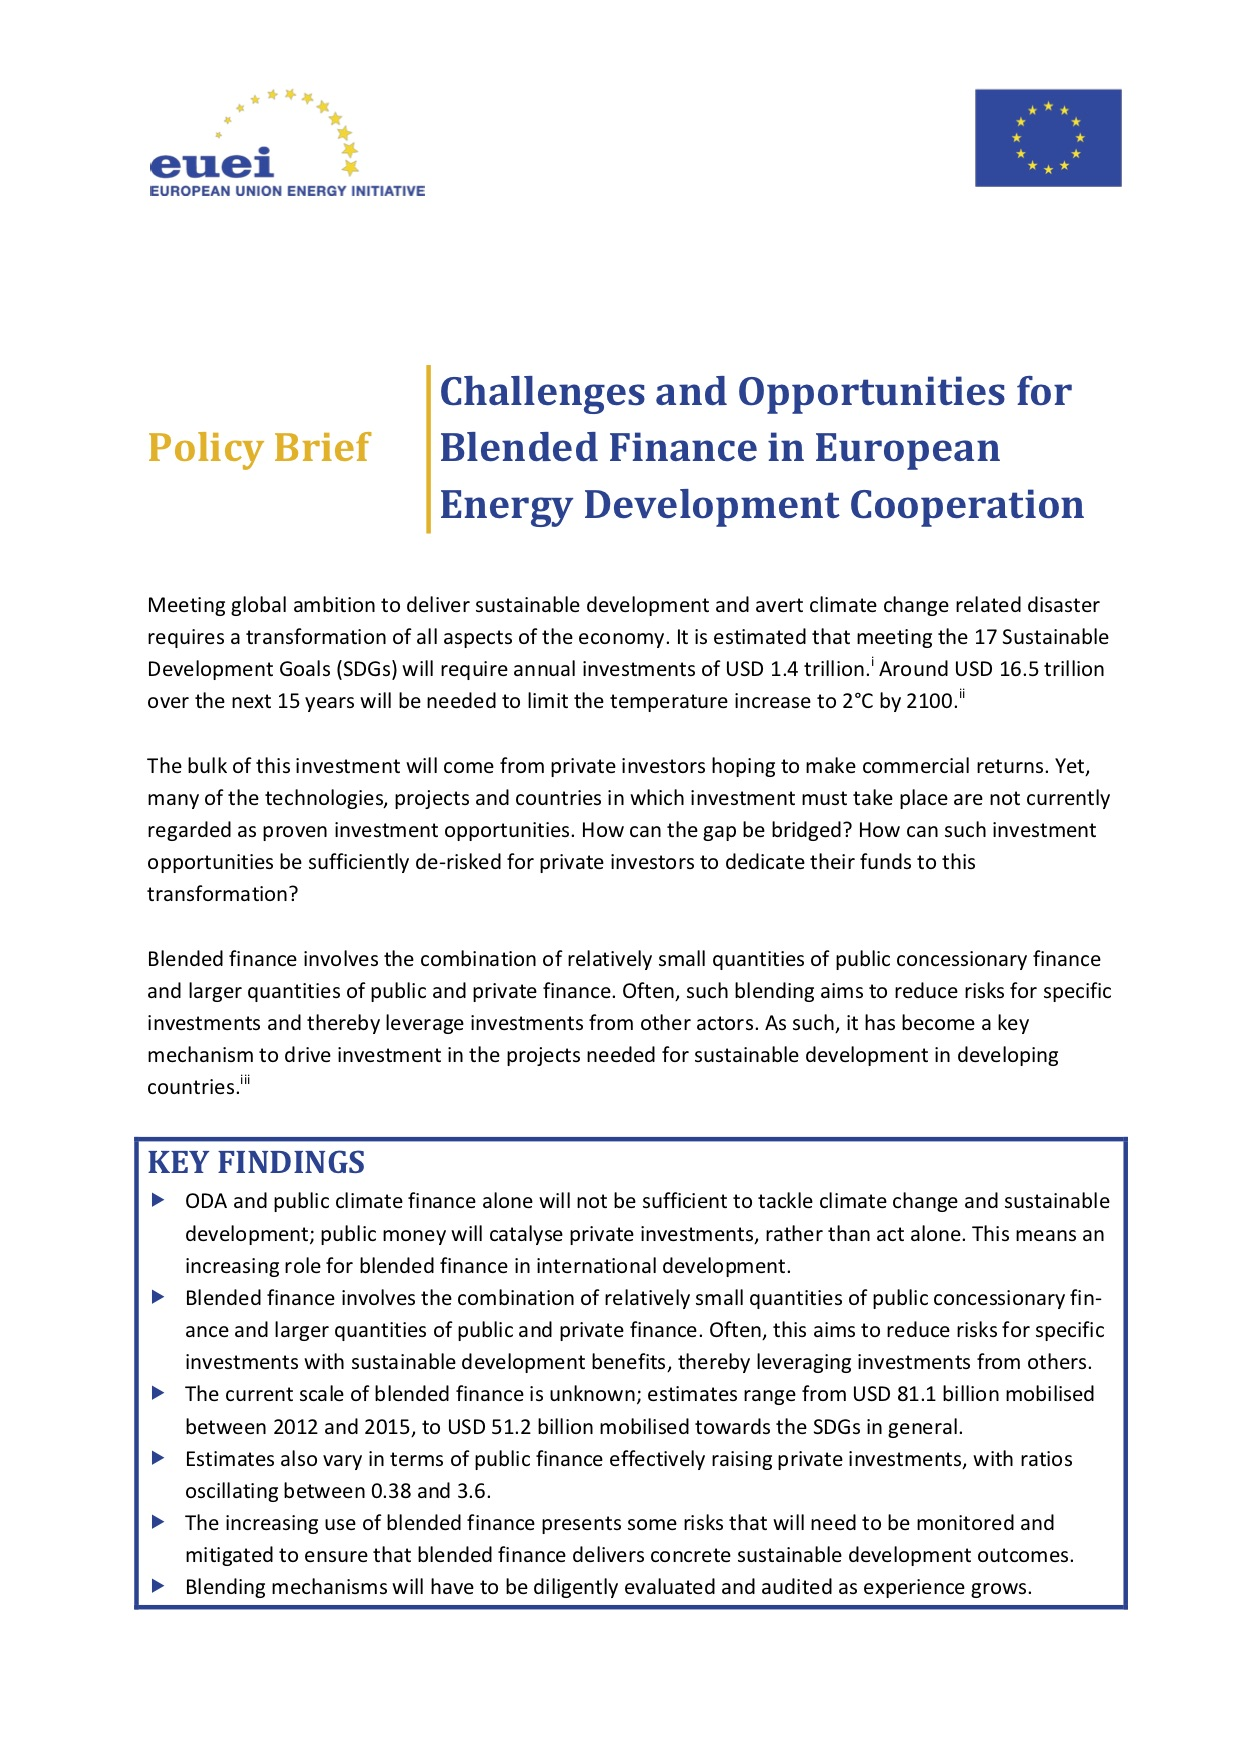 Challenges and Opportunities for Blended Finance in European Energy Development Cooperation